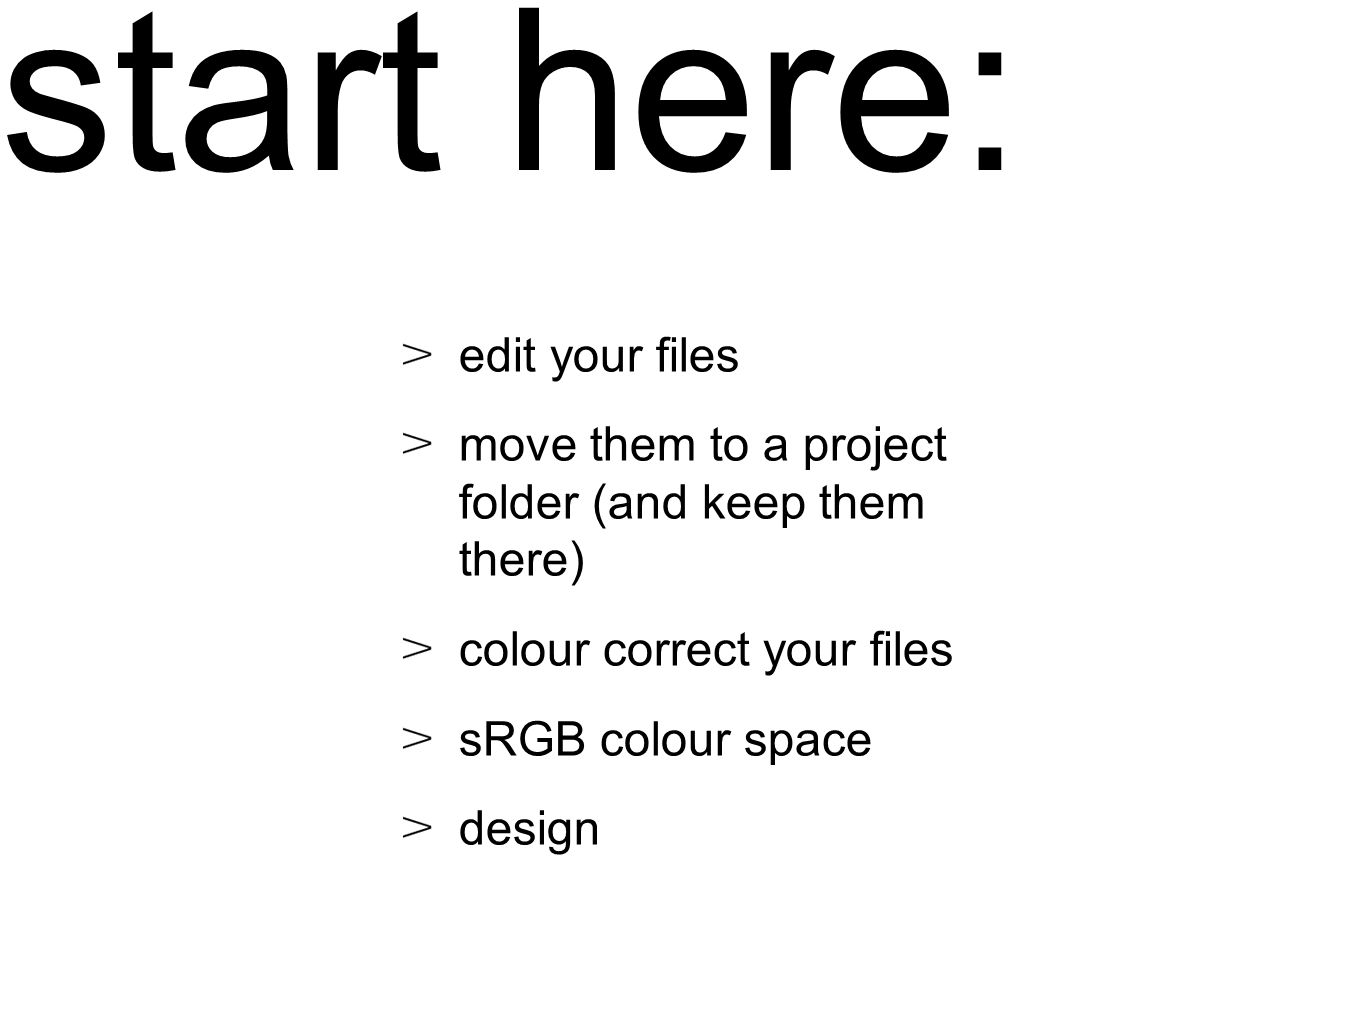 start here: edit your files move them to a project folder (and keep them there) colour correct your files sRGB colour space design